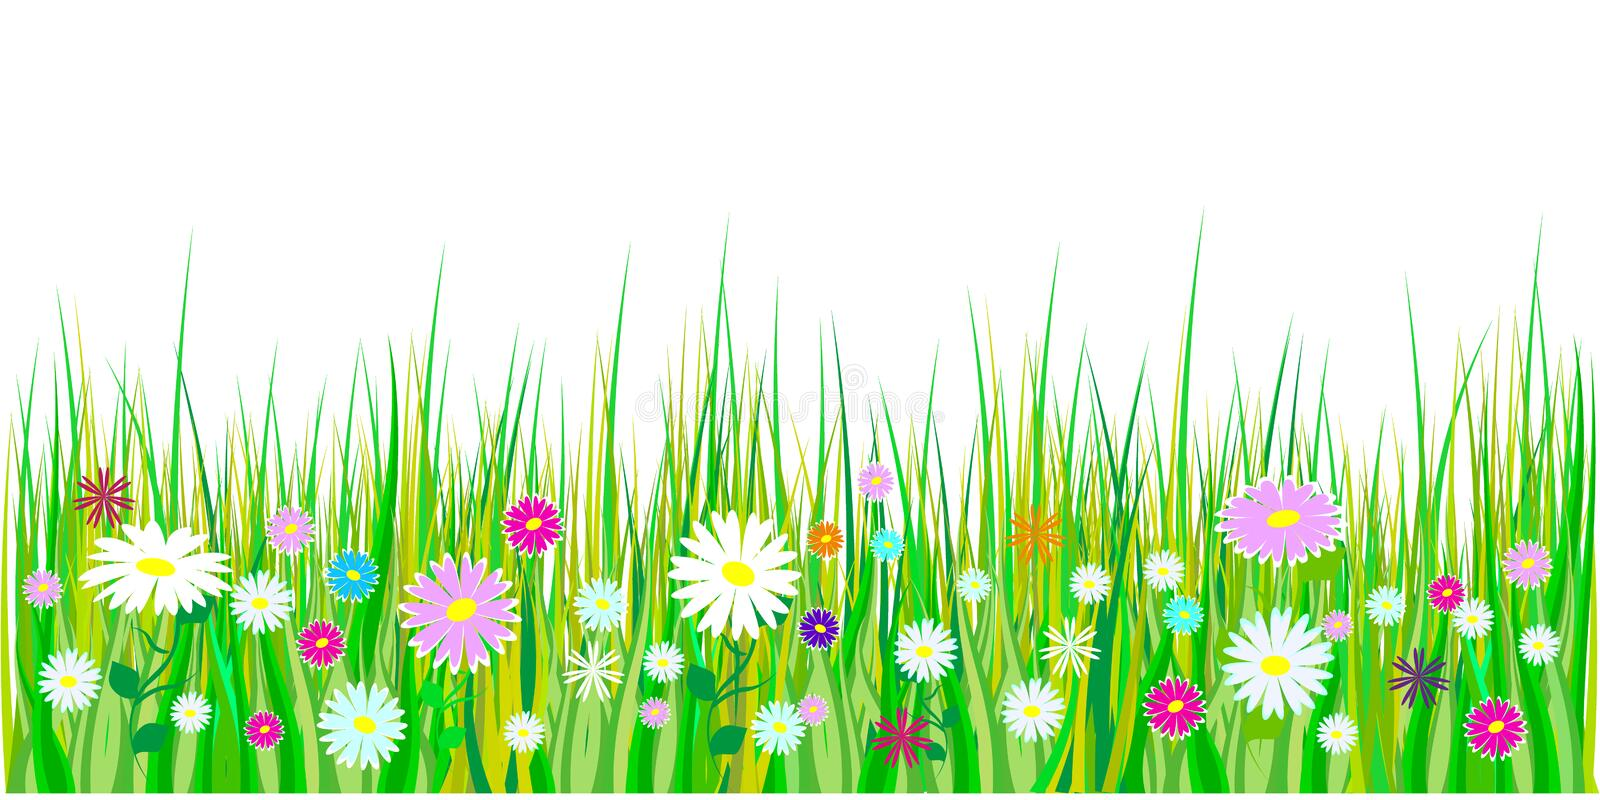 Spring grass and flowers borders. Easter decoration with spring grass and meadow flowers. Isolated on white background. Vector royalty free illustration